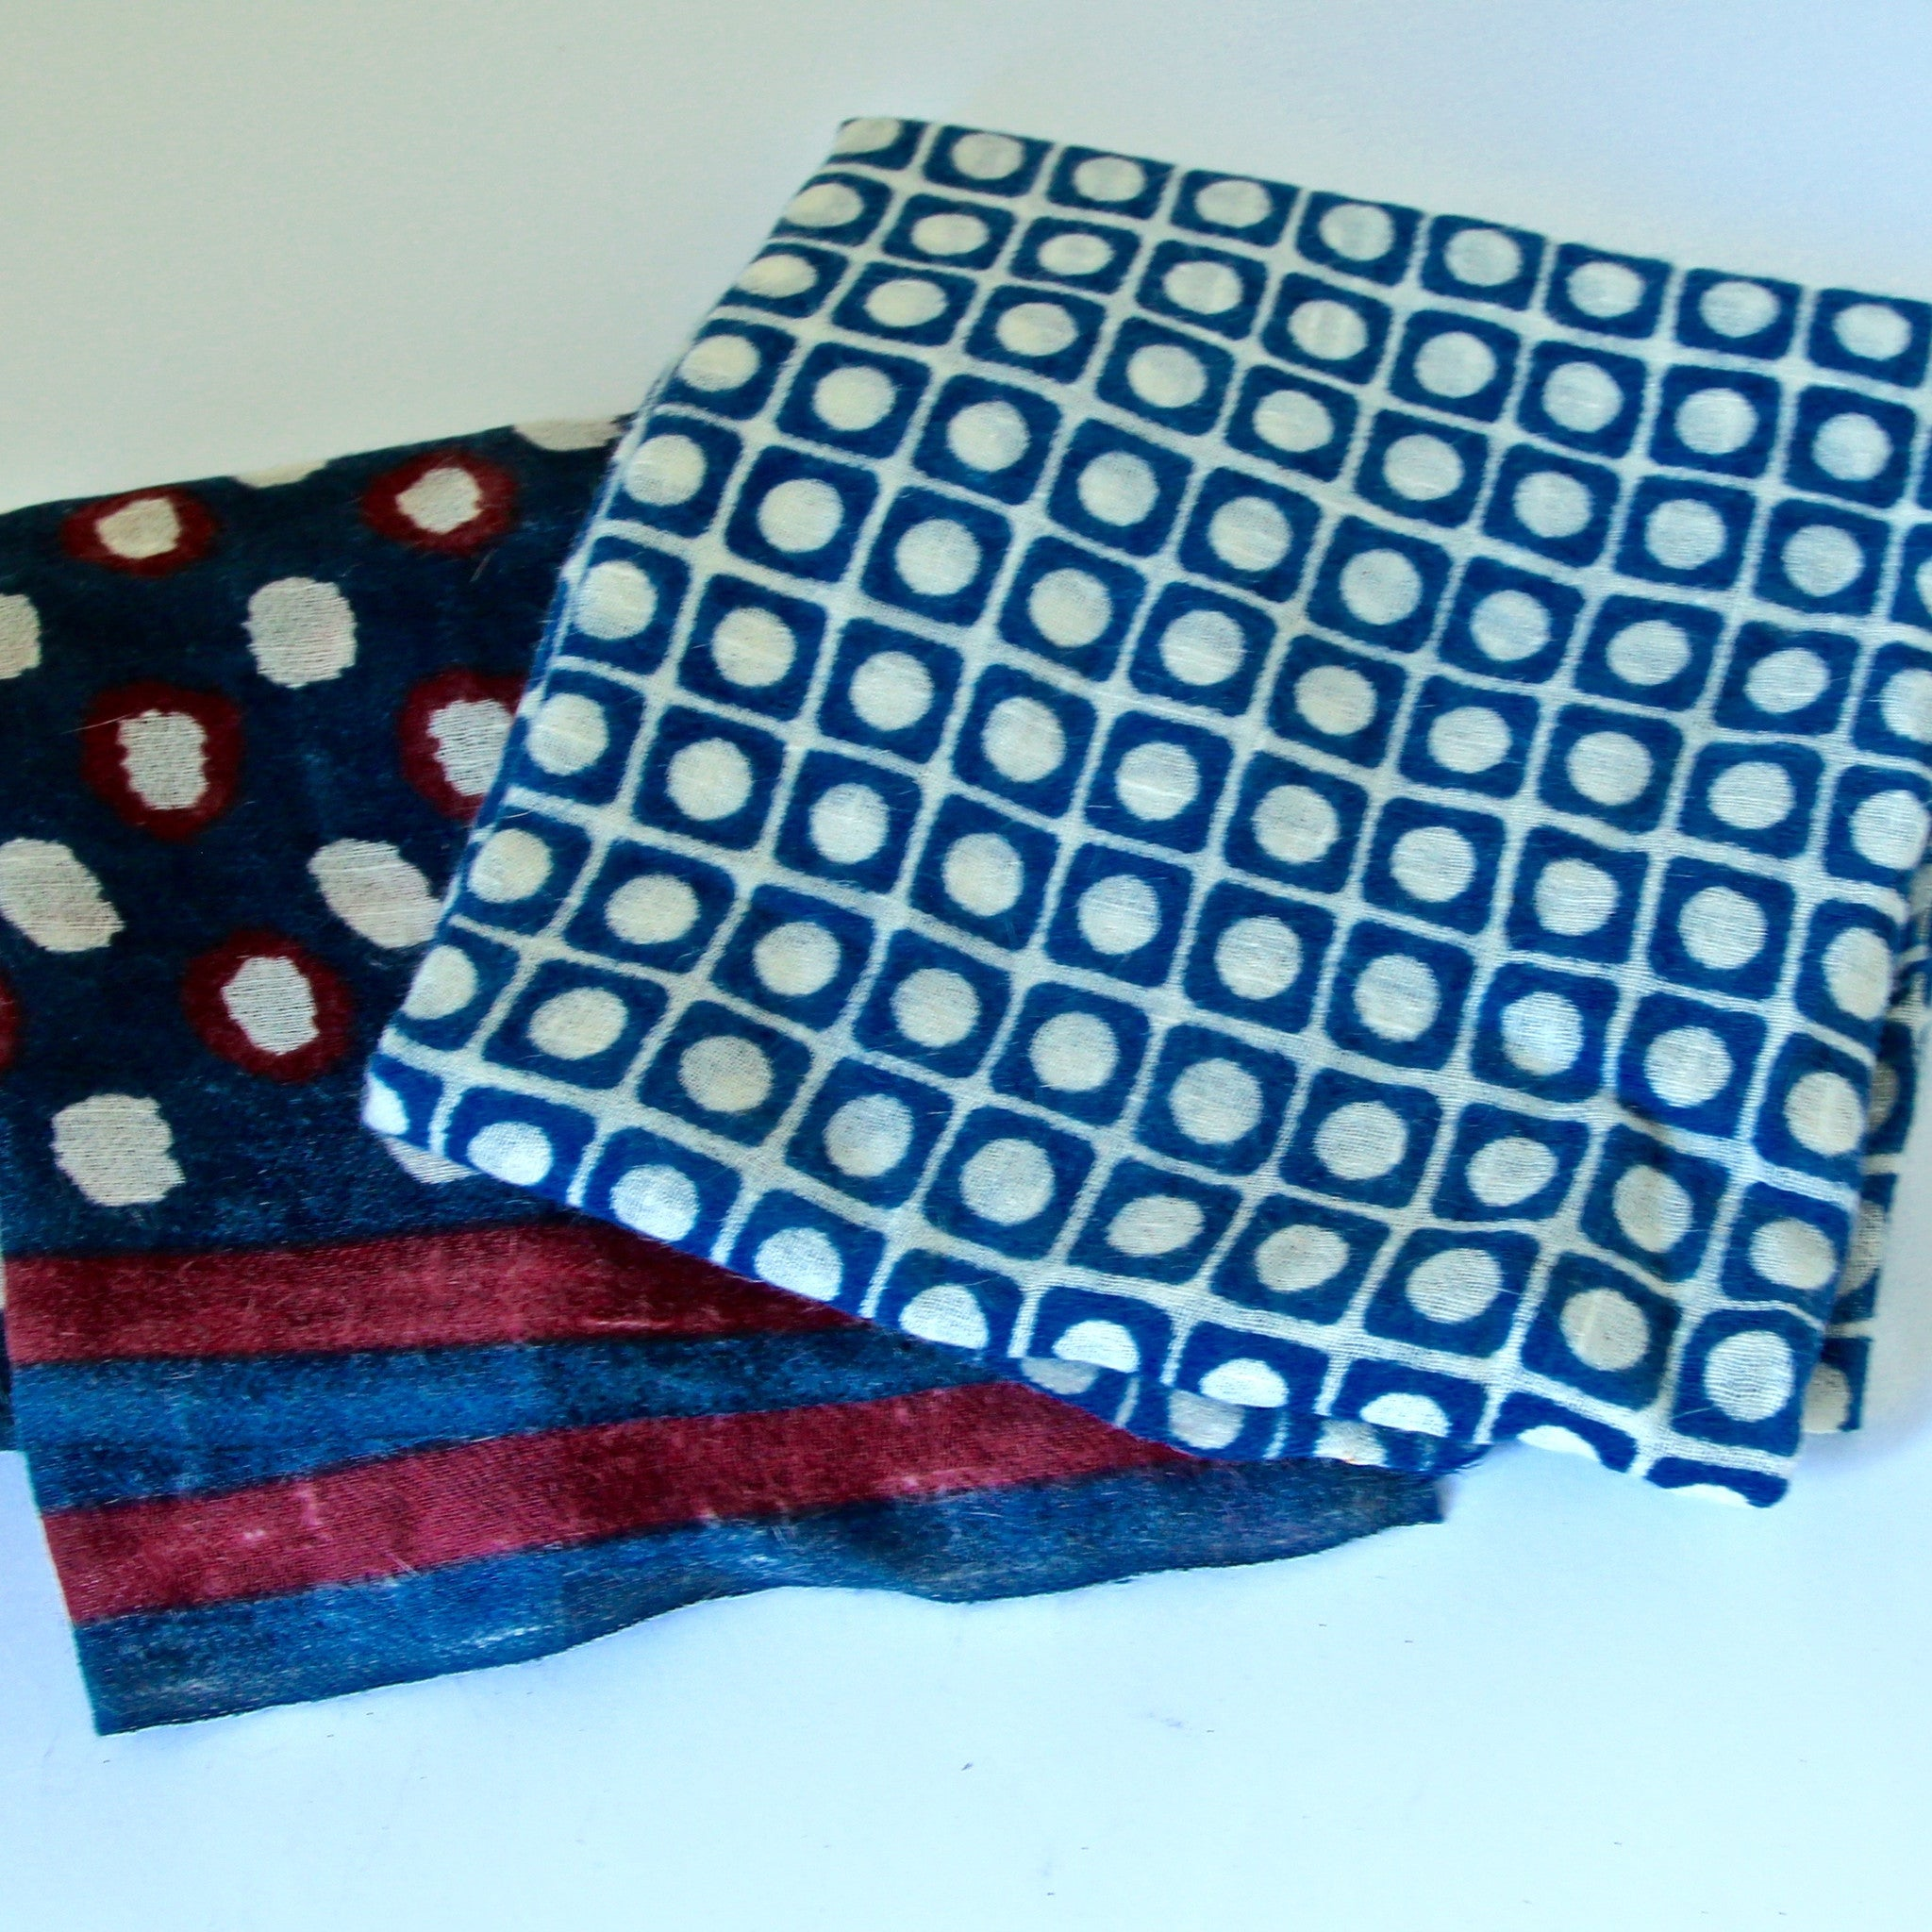 Ladakhi Pashmina/Wool Shawls - Blue Square Dot and Blue with Red and White Dot